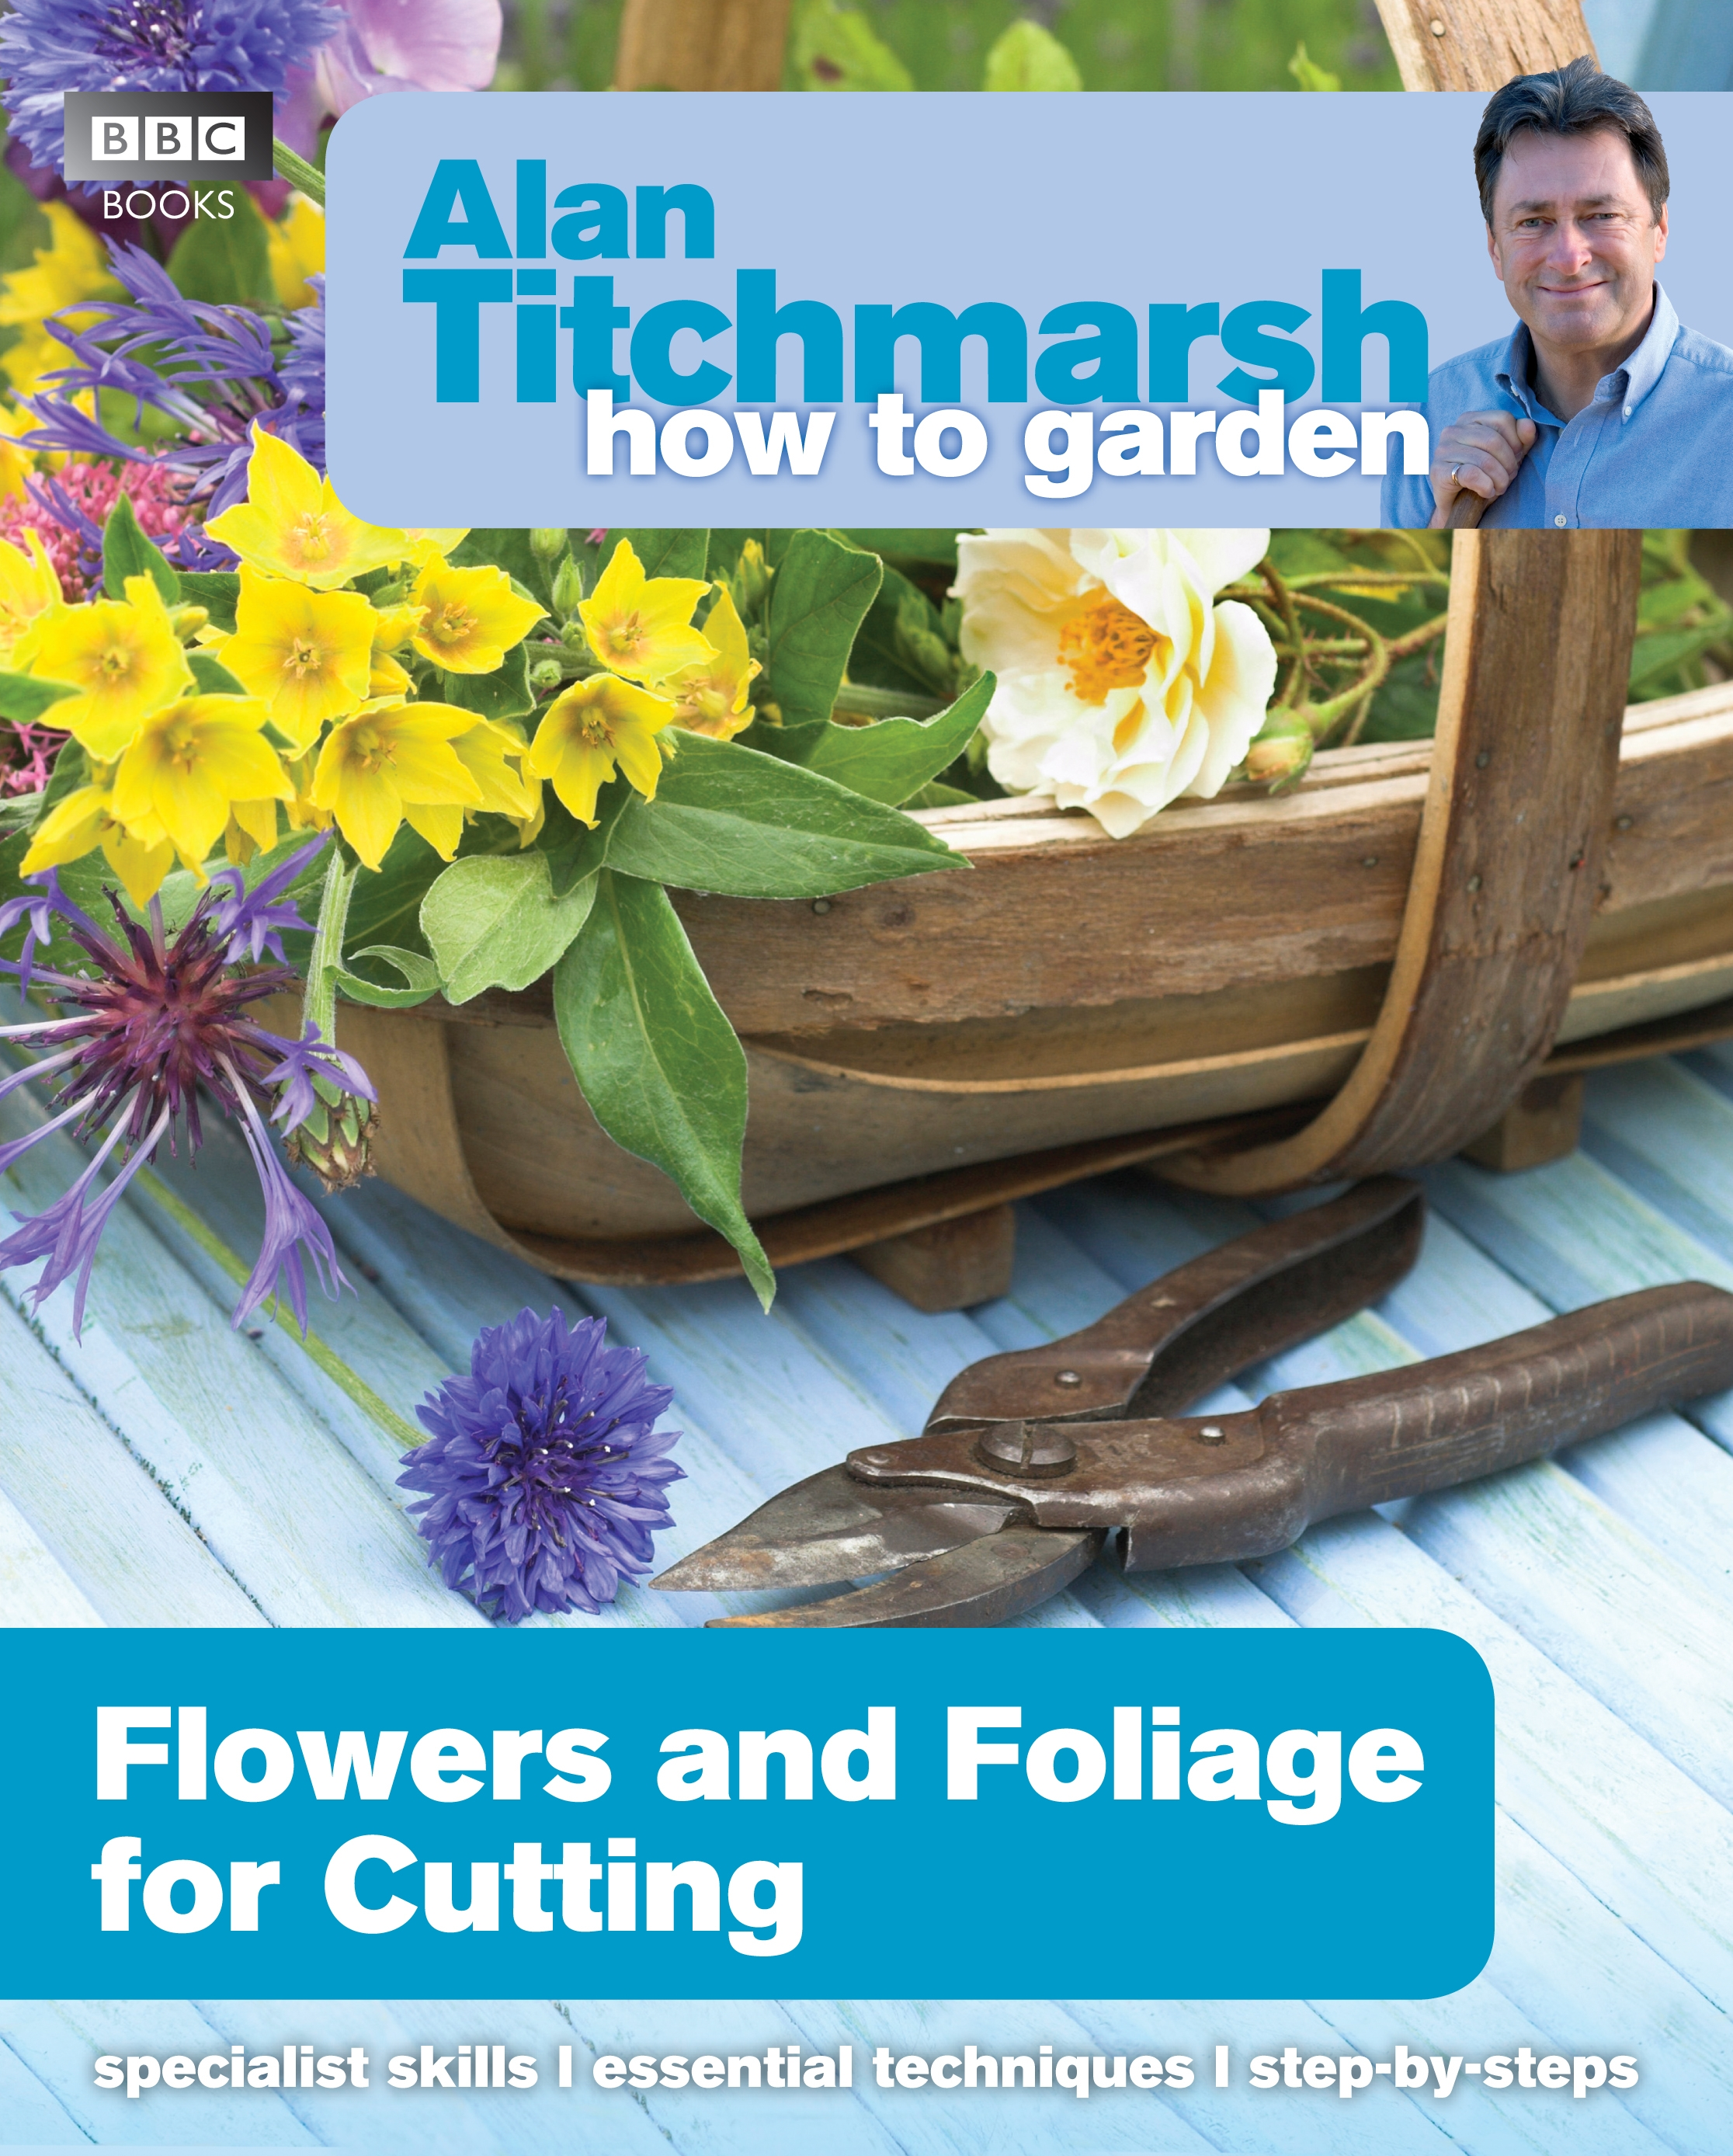 Alan Titchmarsh How to Garden Flowers and Foliage for Cutting by